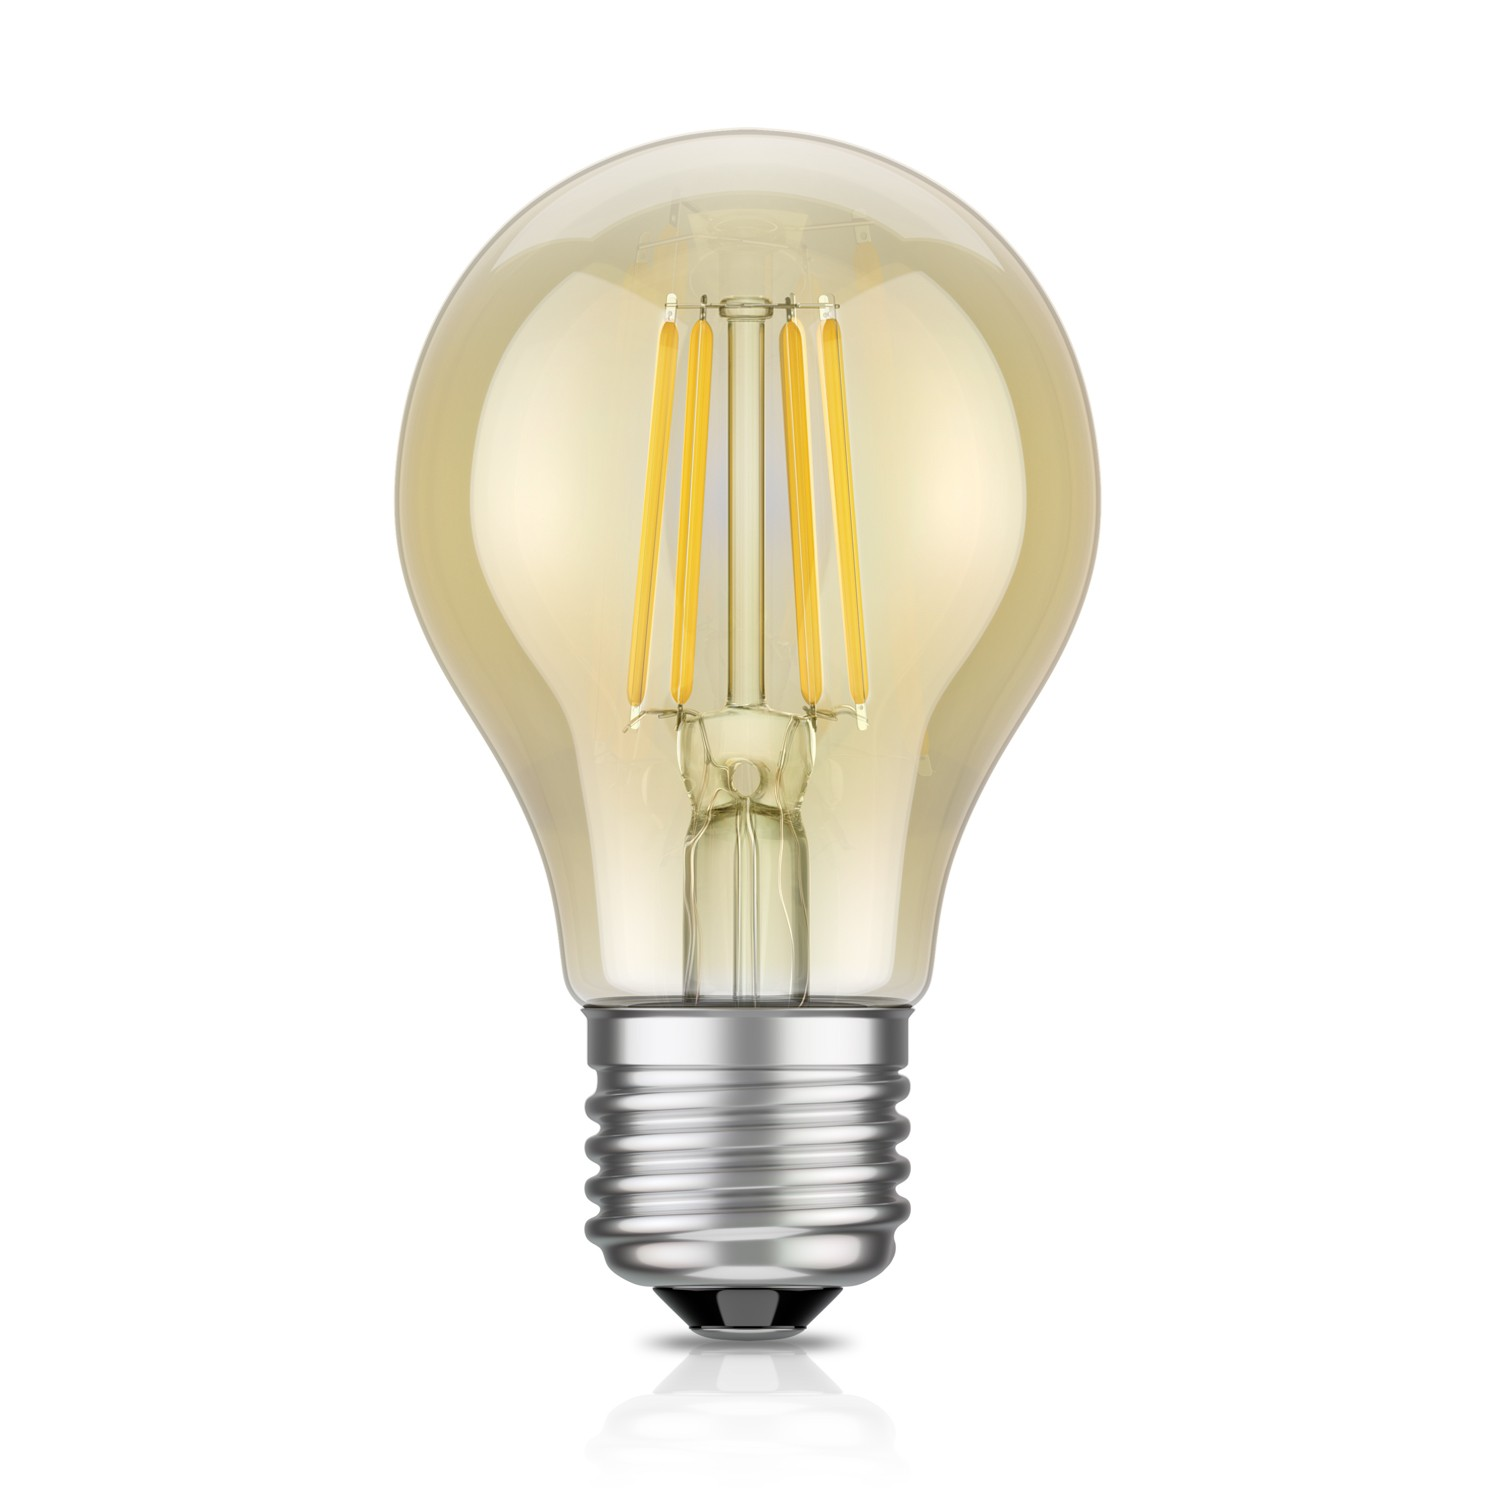 E27 Lampe E27 Led Lampe Filament Vintage Gold A60 4w 40w Extra Warm